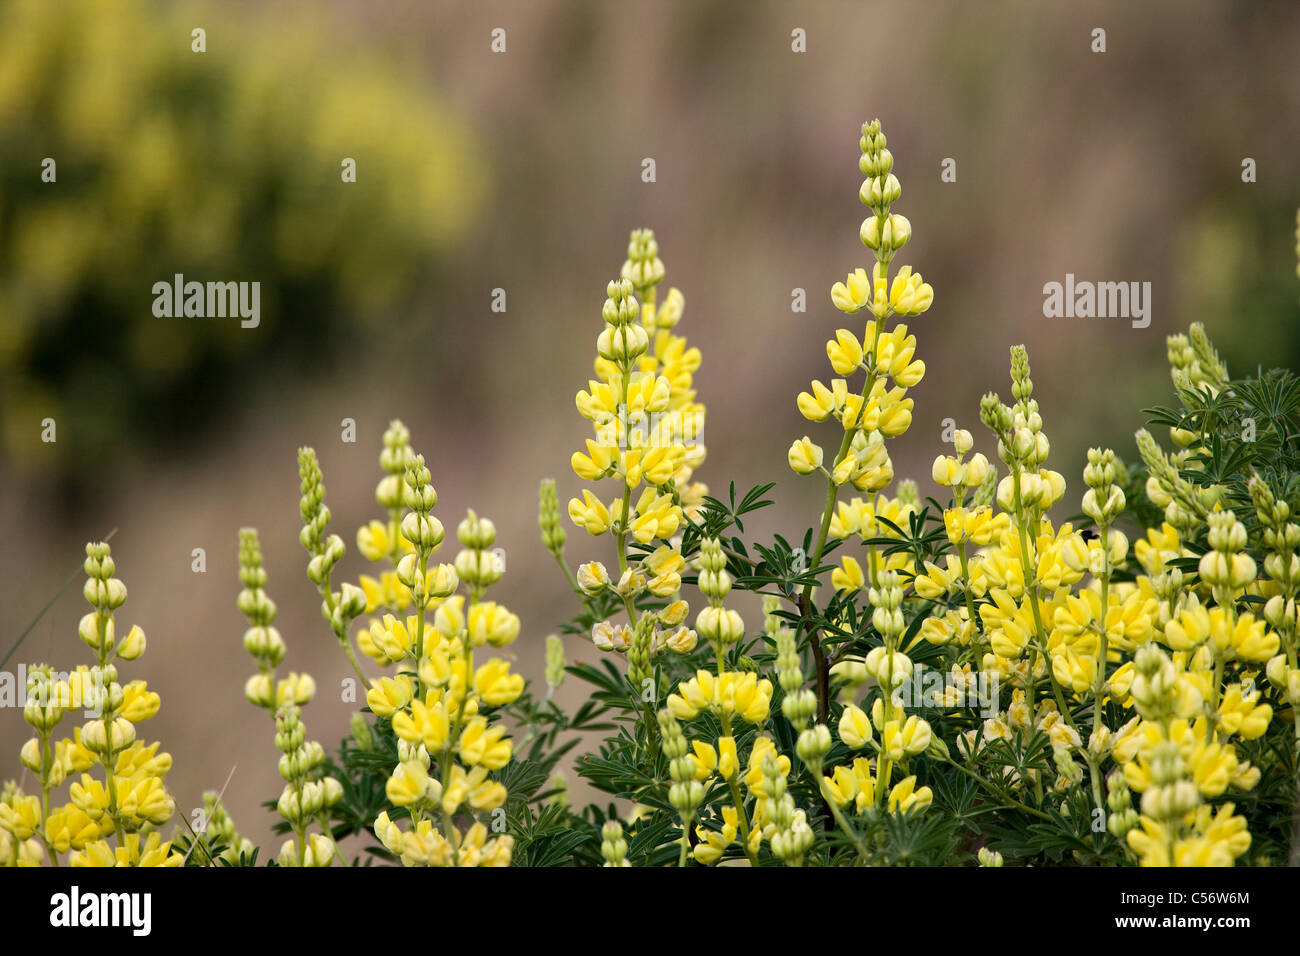 Tree Lupin Lupinus arboreus lemon yellow flowers growing in sand dunes at Dawlish warren Devon Stock Photo